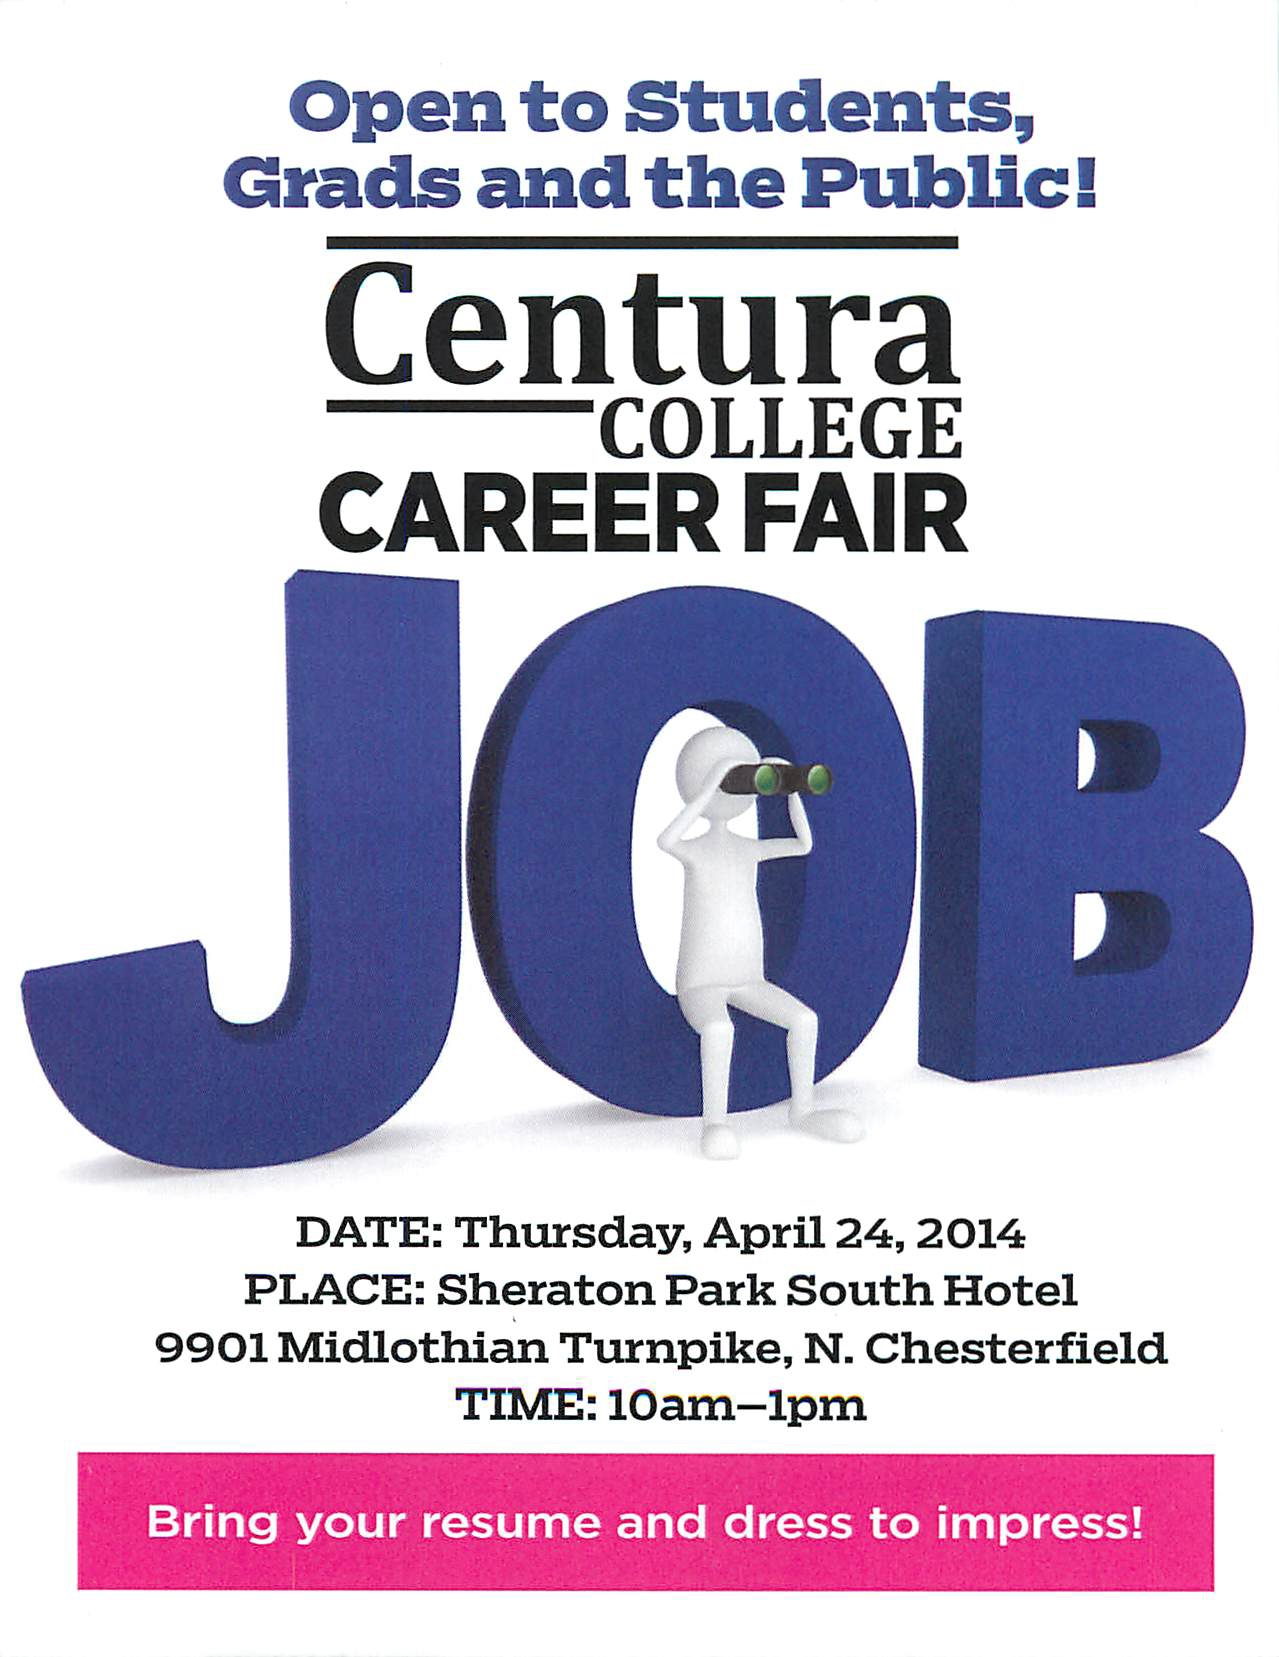 centura college career fair virginia employment commission spring career fair 2014 jpg